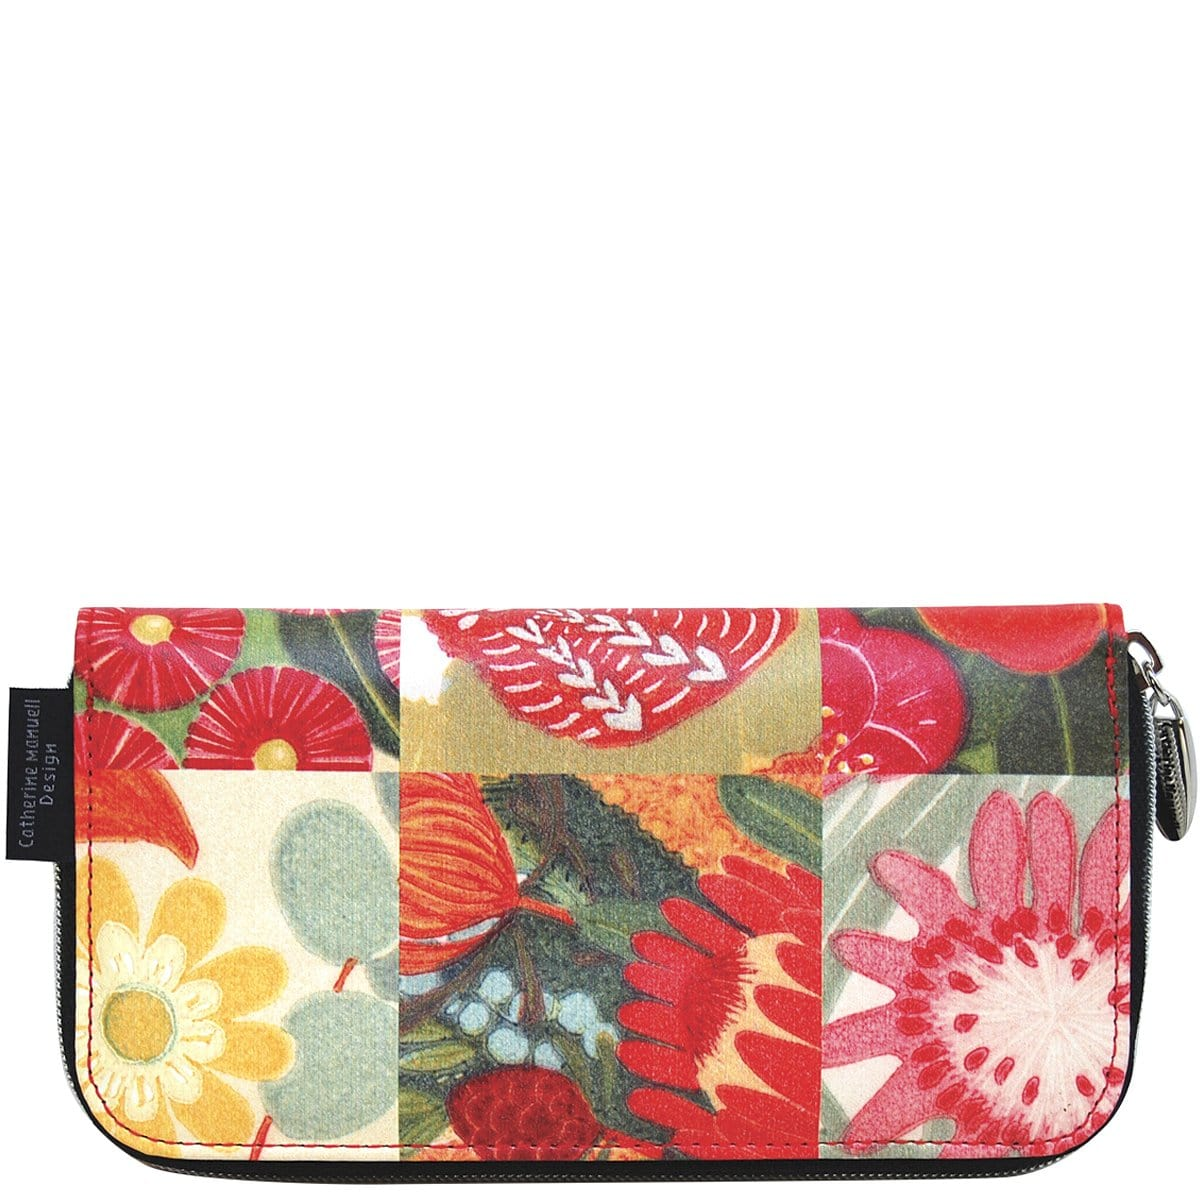 Floral Wallet - Kate Sampler